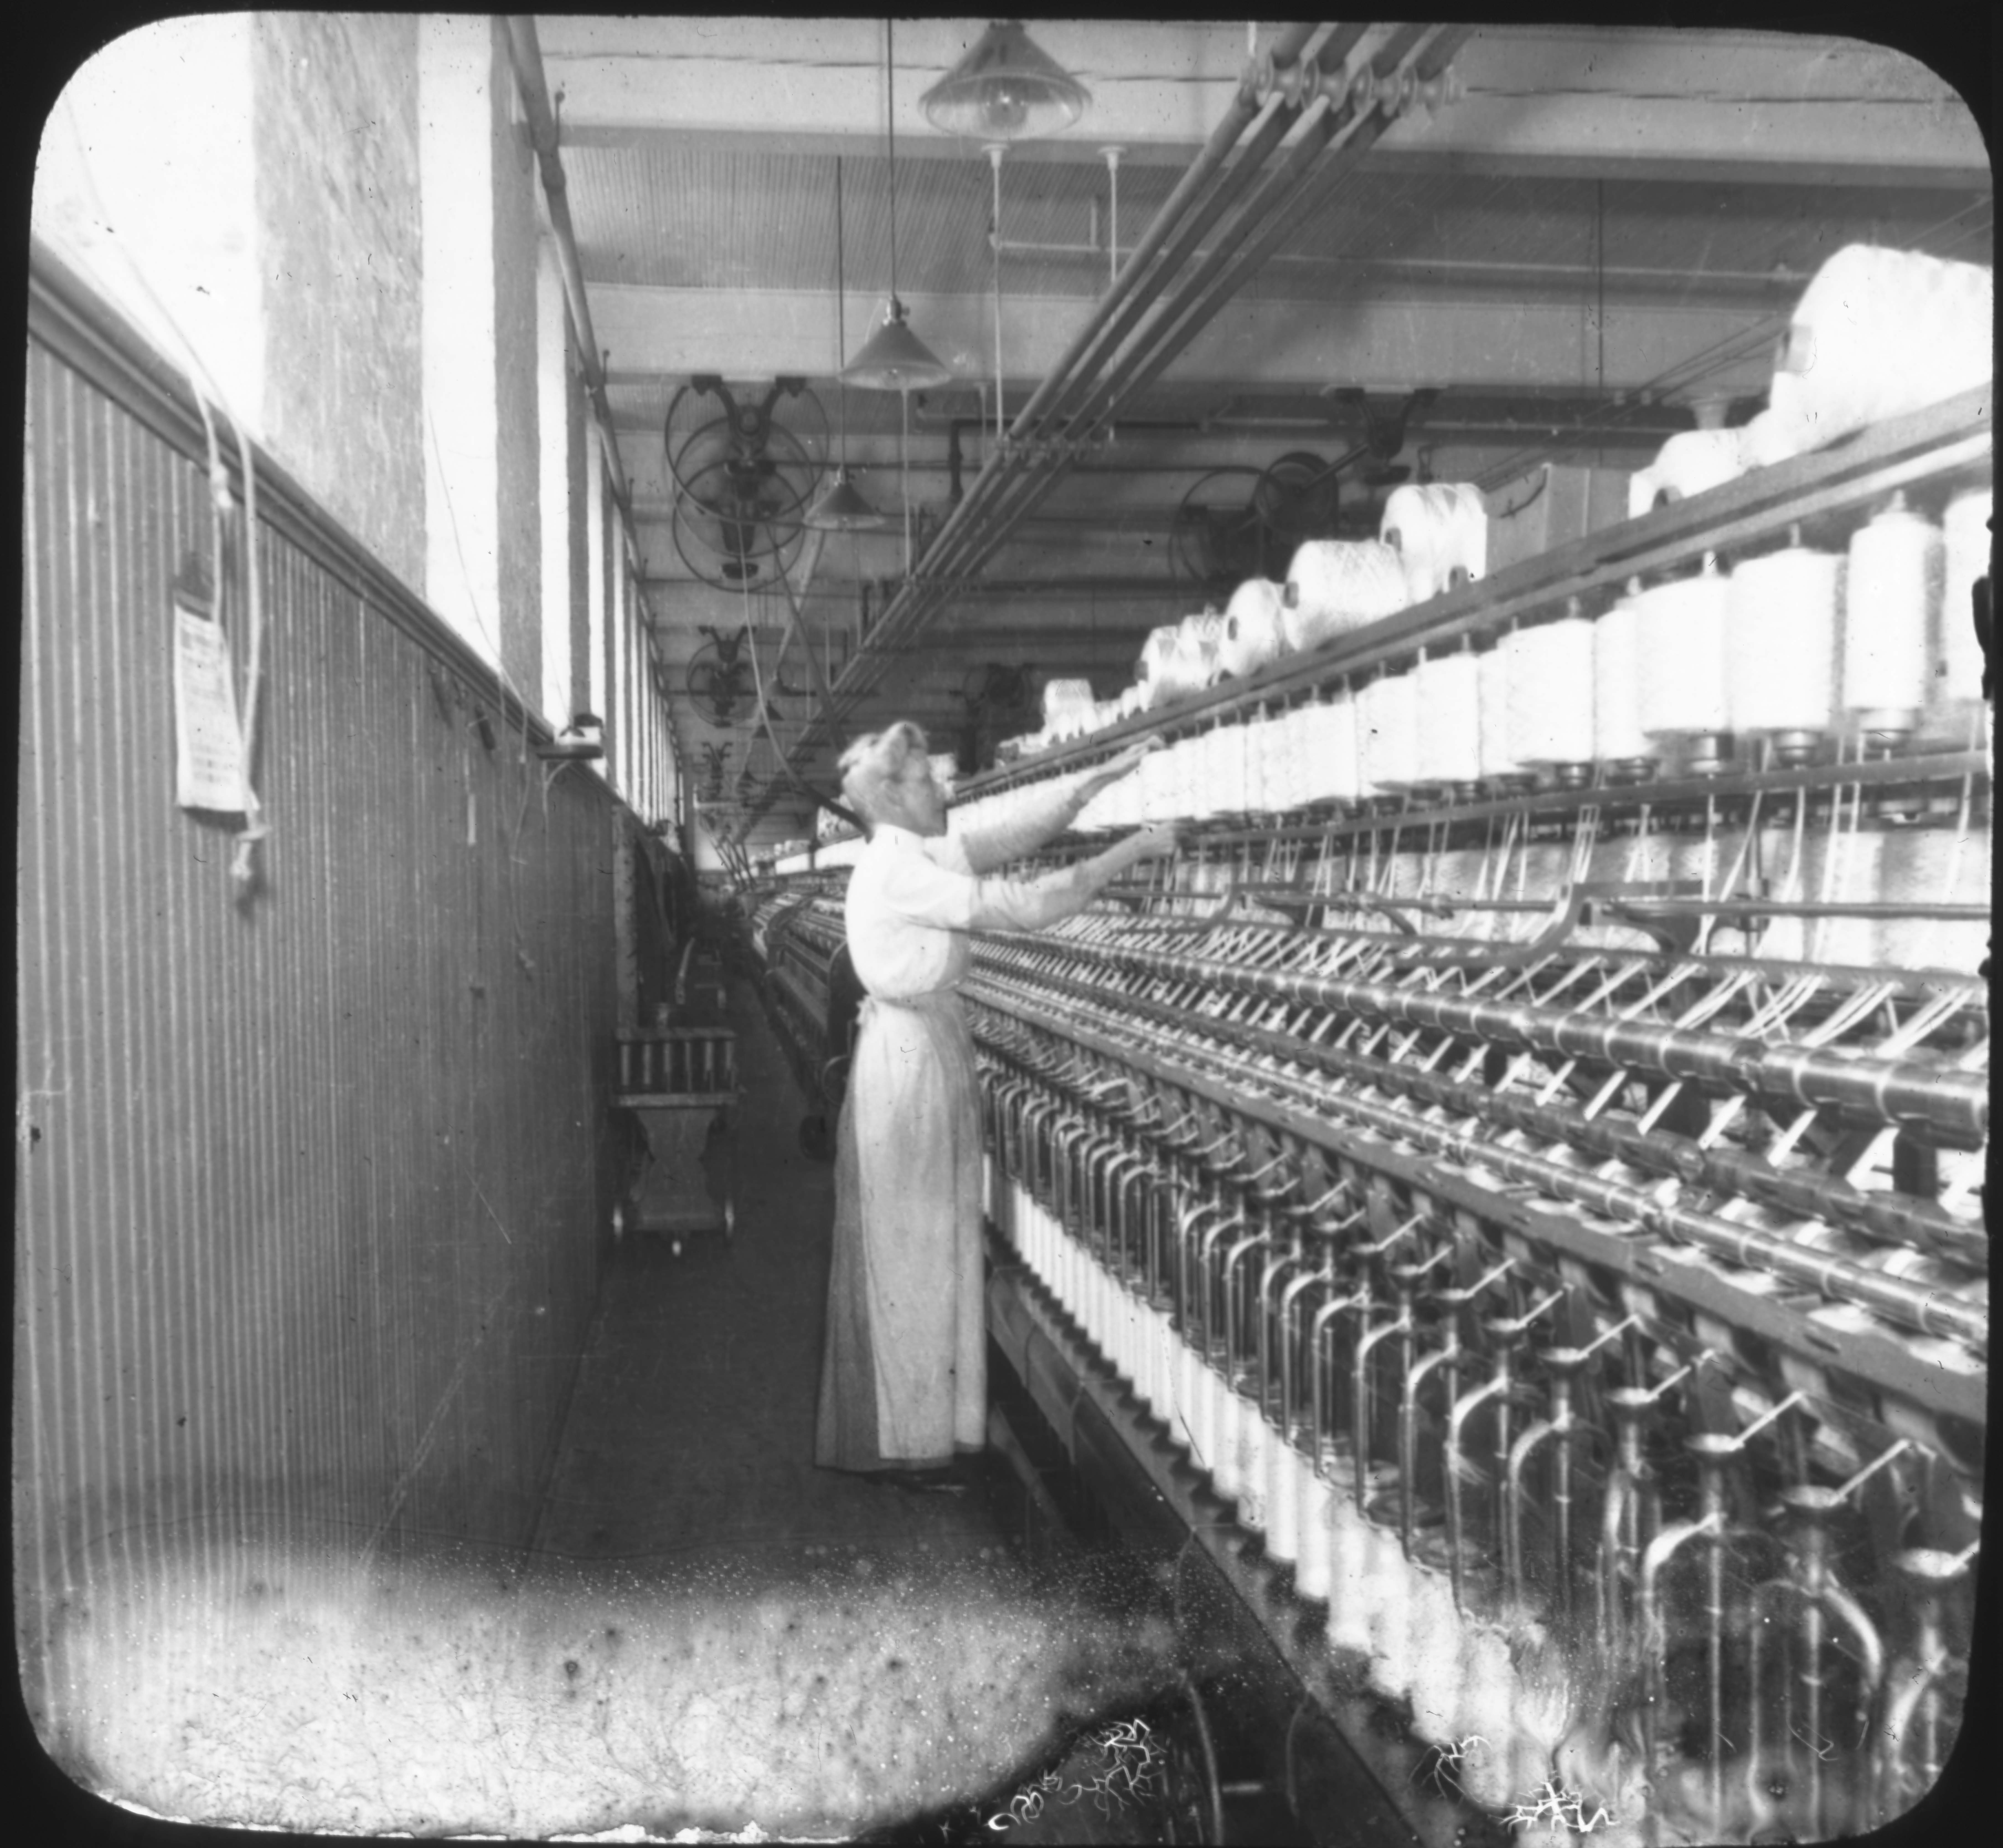 Spinning-Silk Industry, So. Manchester, Conn.